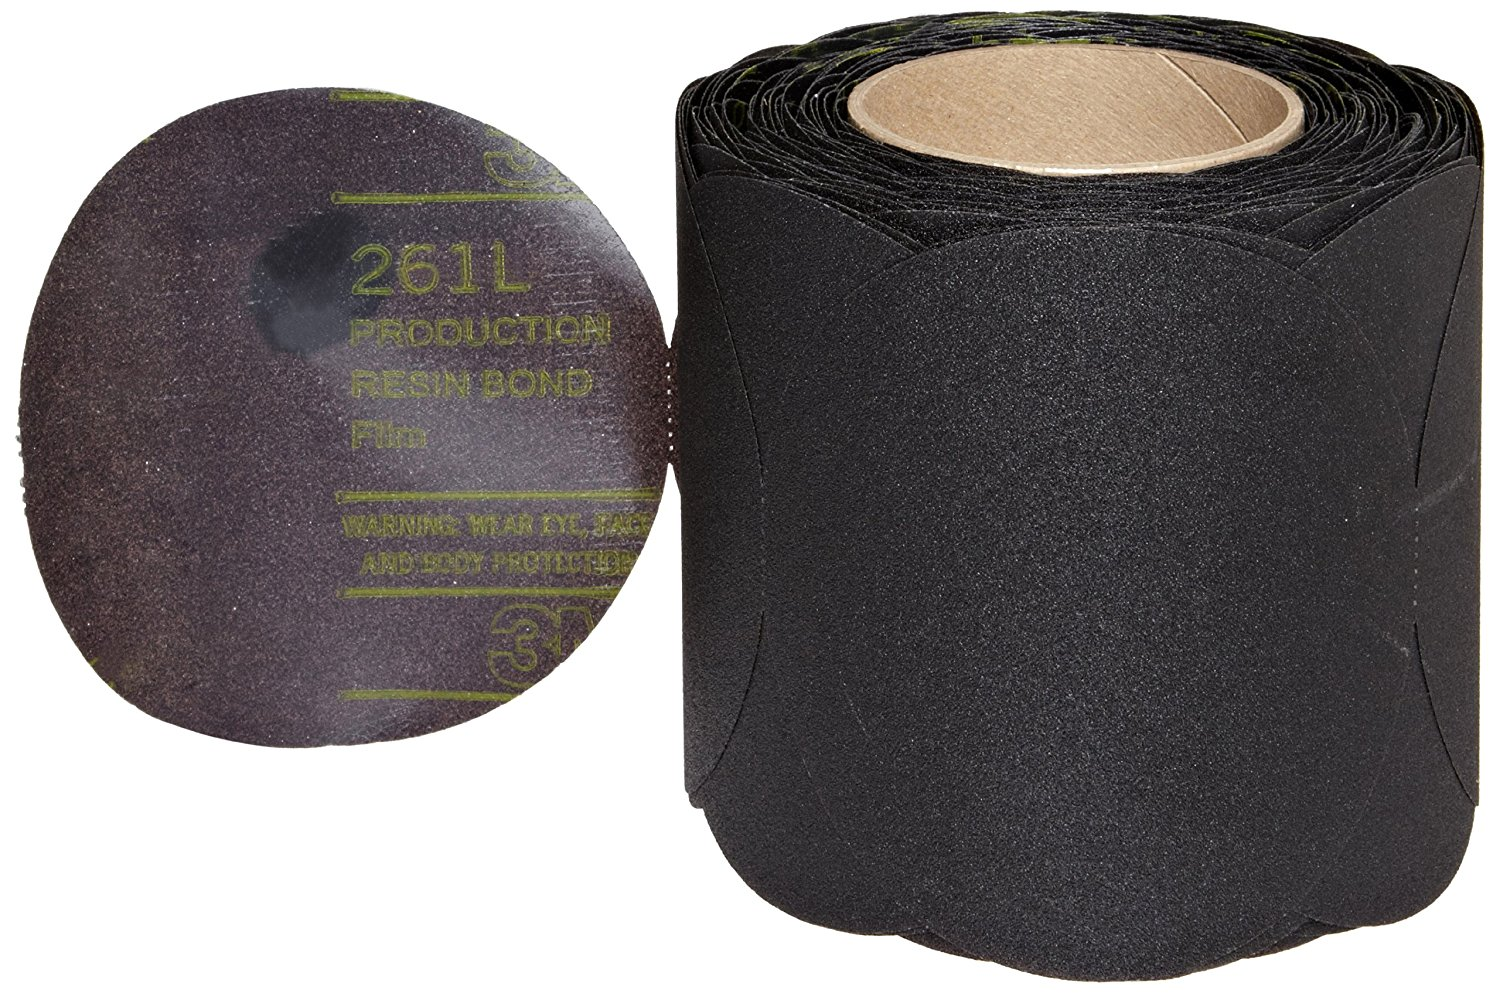 "3M Stikit Film Disc Roll 261L, Aluminum Oxide, 5"" Diameter, P150 Grit (Roll of 250)"